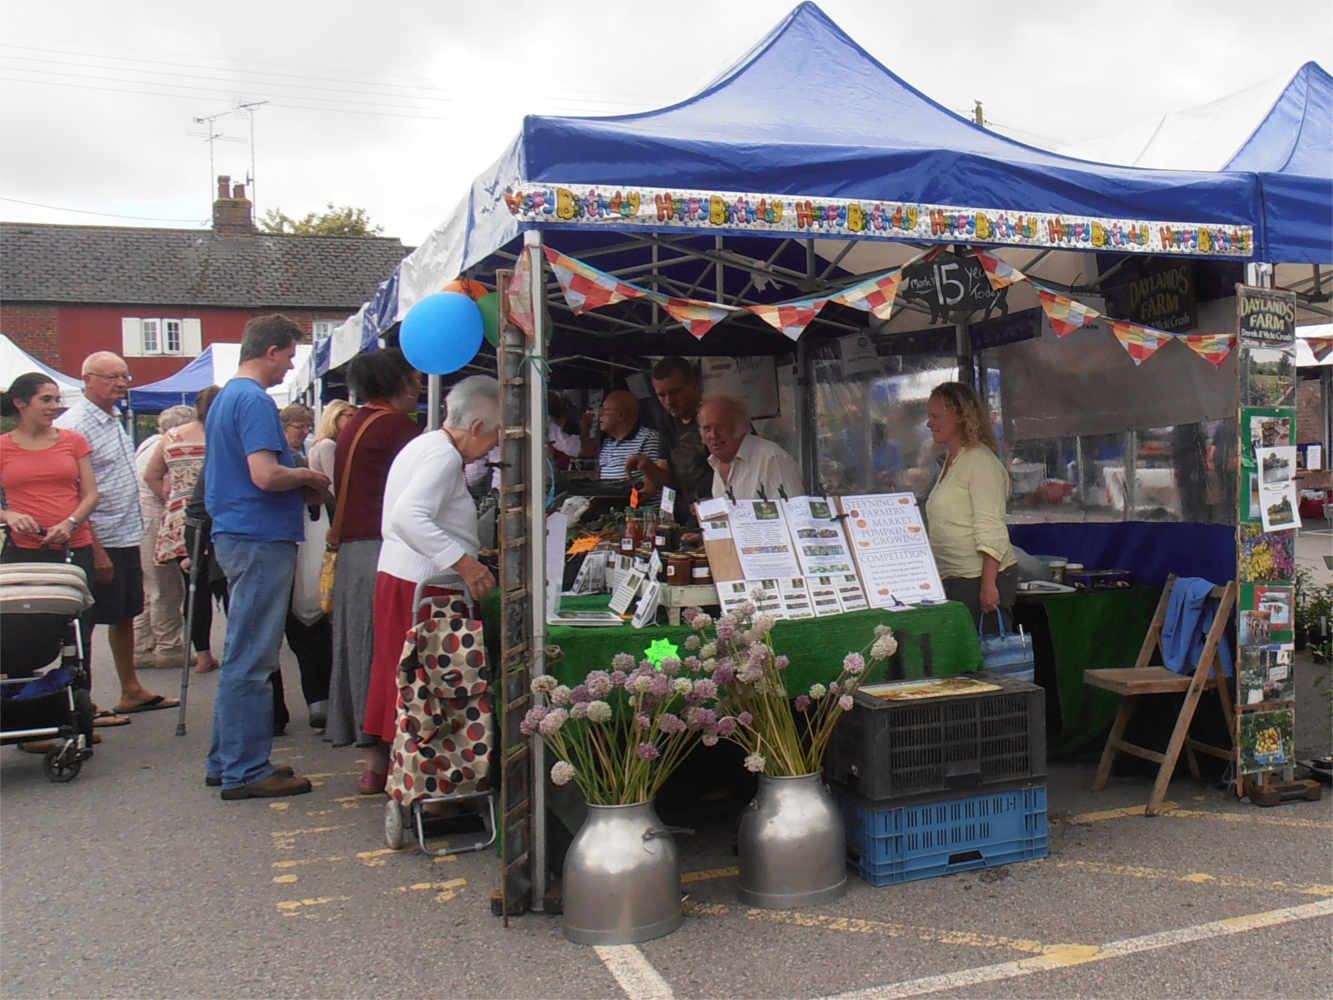 Daylands stall at Steyning farmers' market